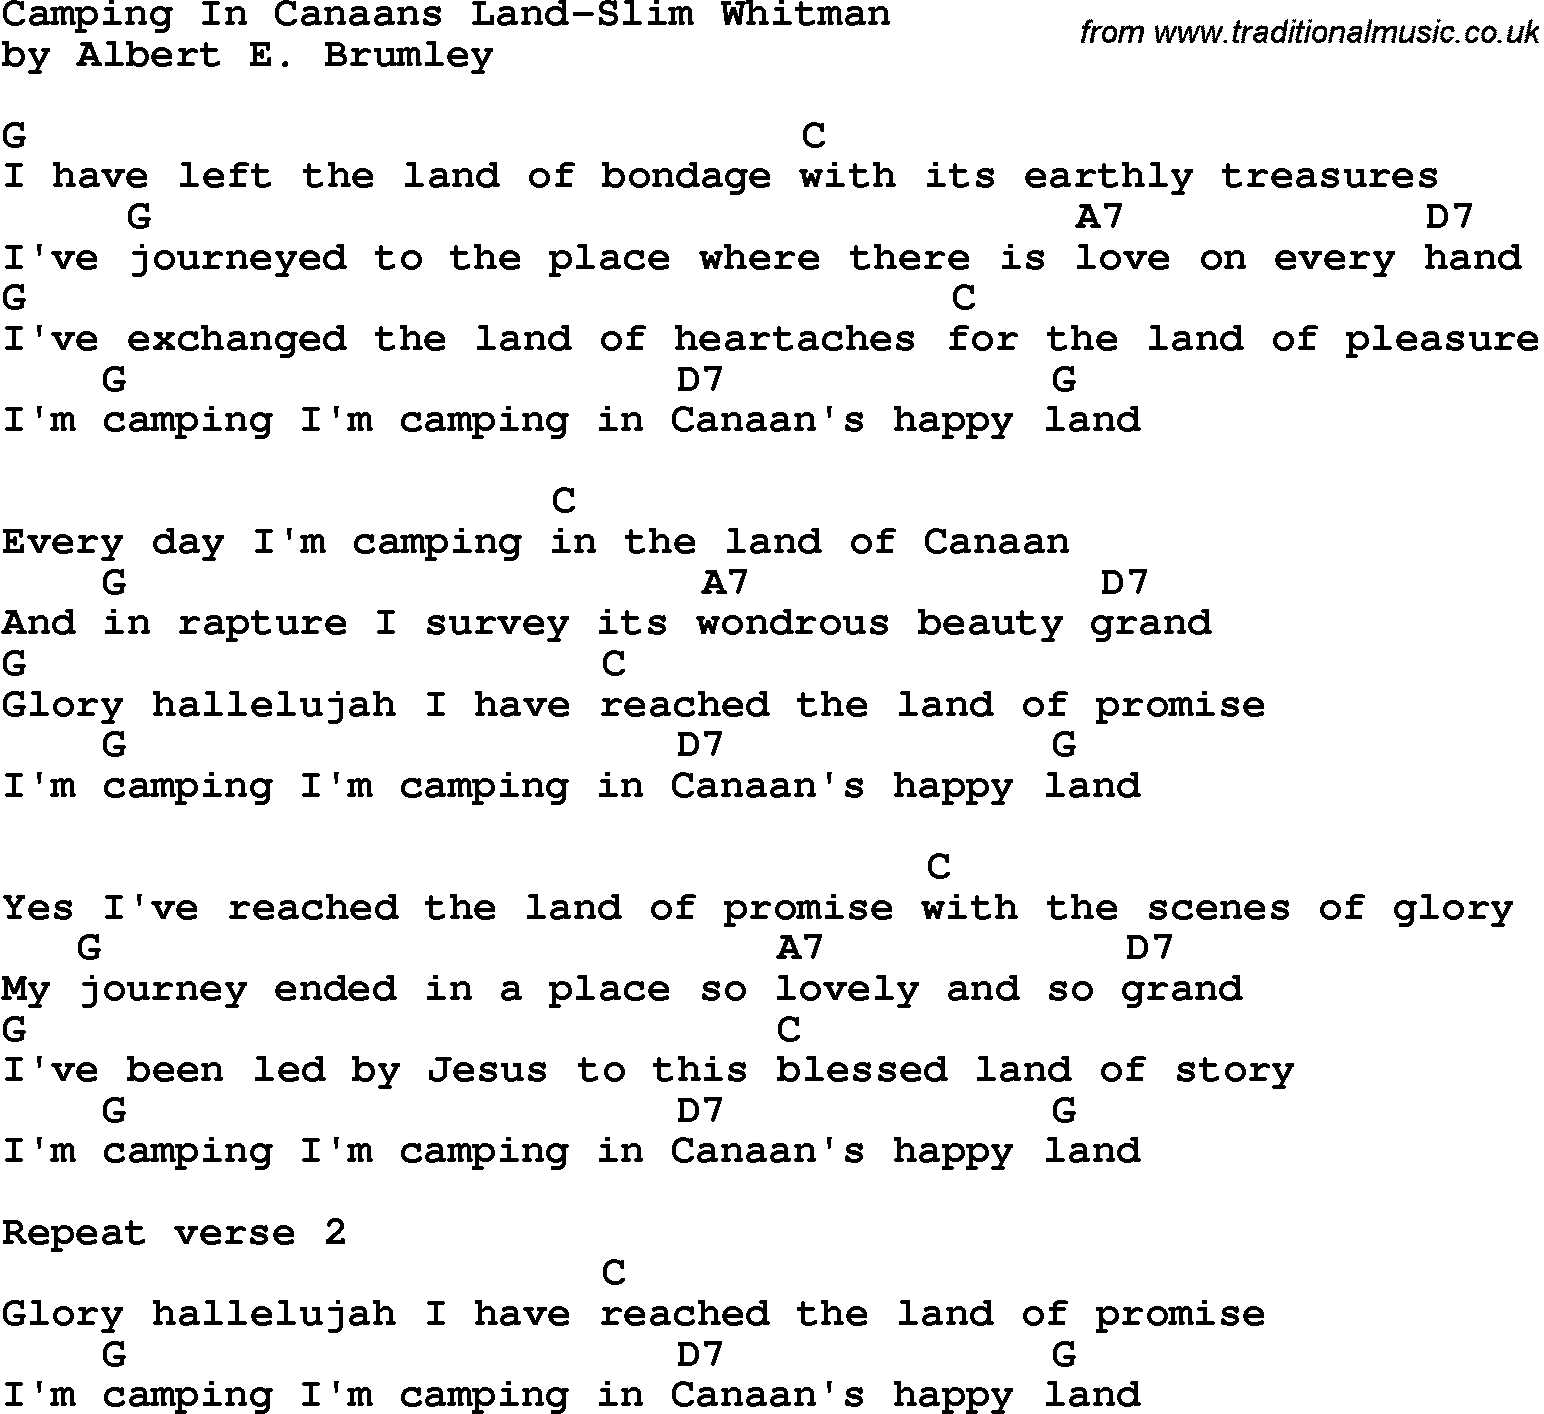 The Stanley Brothers - Camping In Canaan's Land Lyrics ...